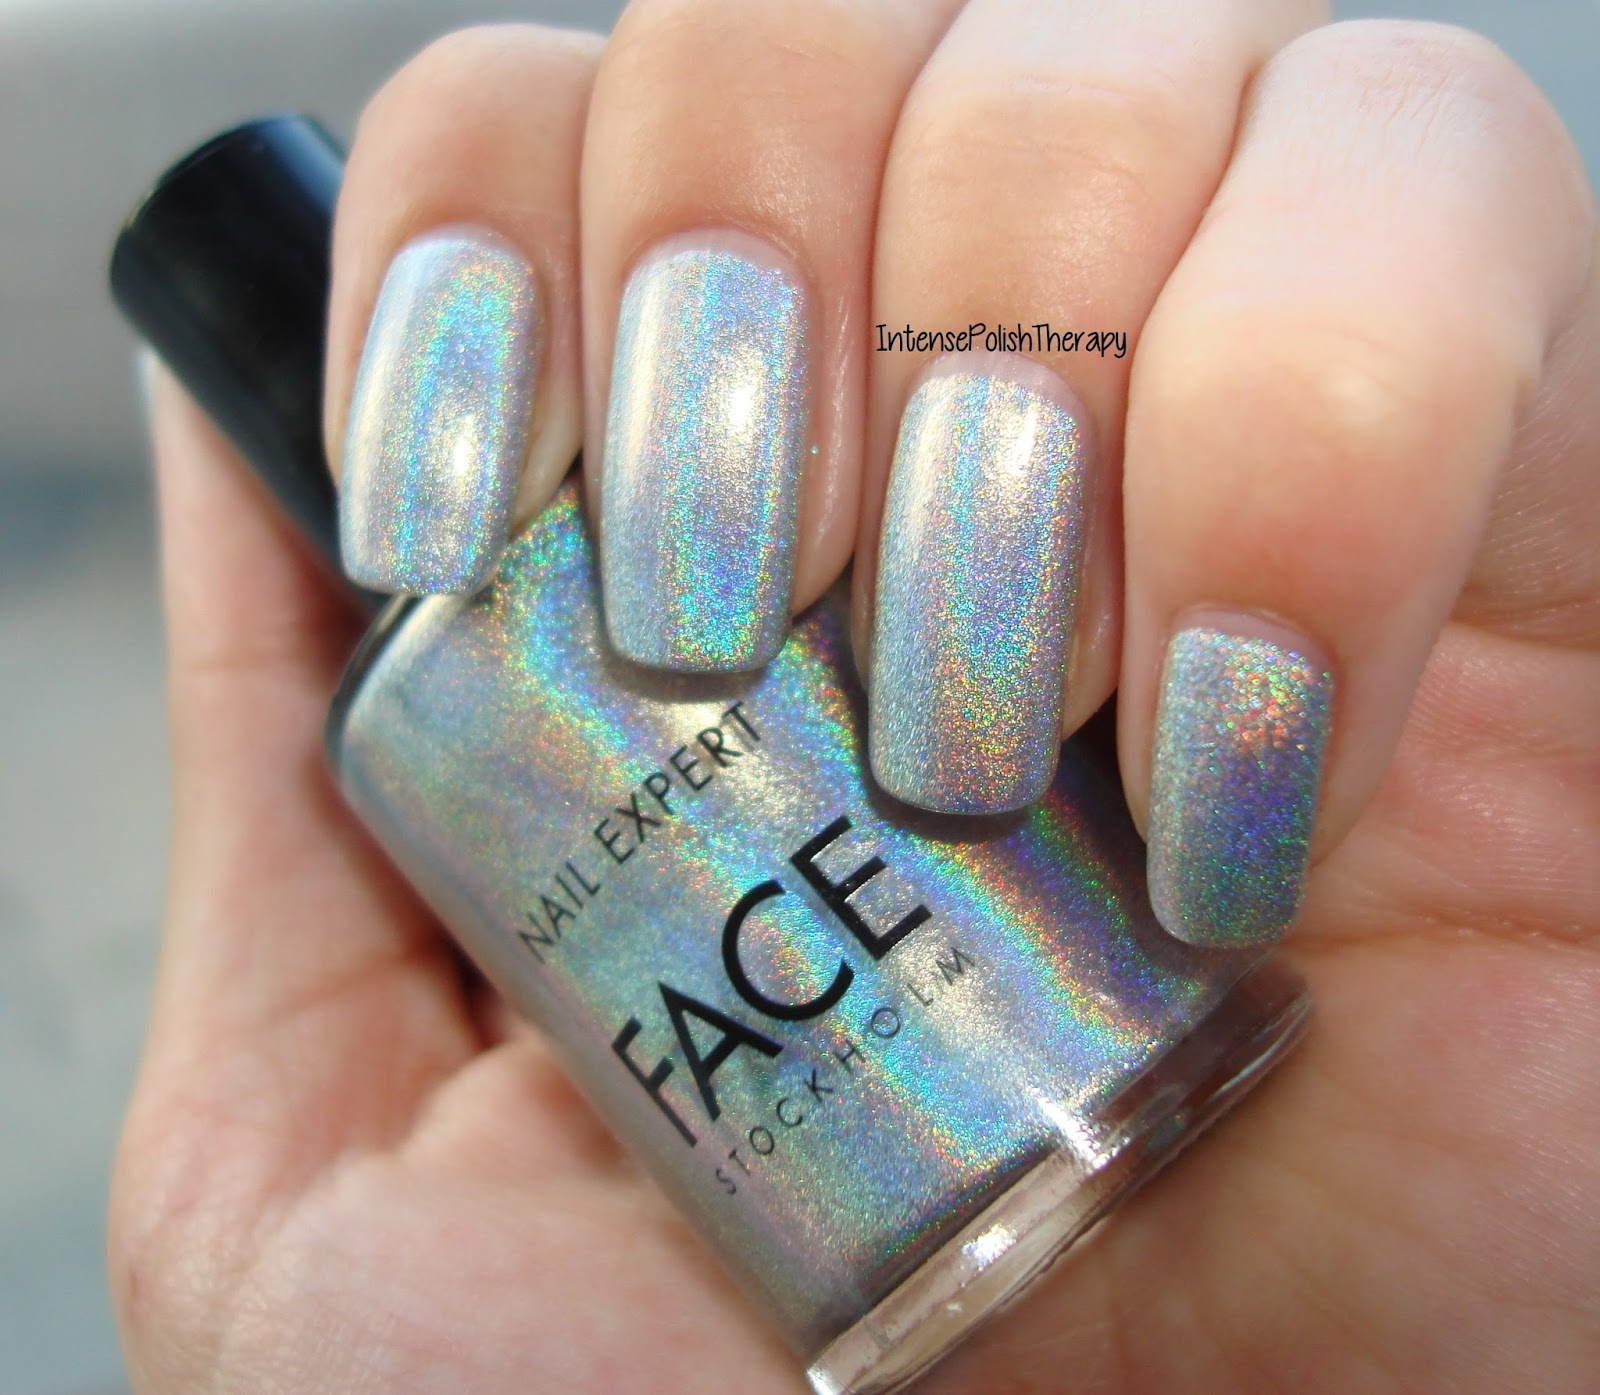 Intense Polish Therapy: Swatch Post # 18